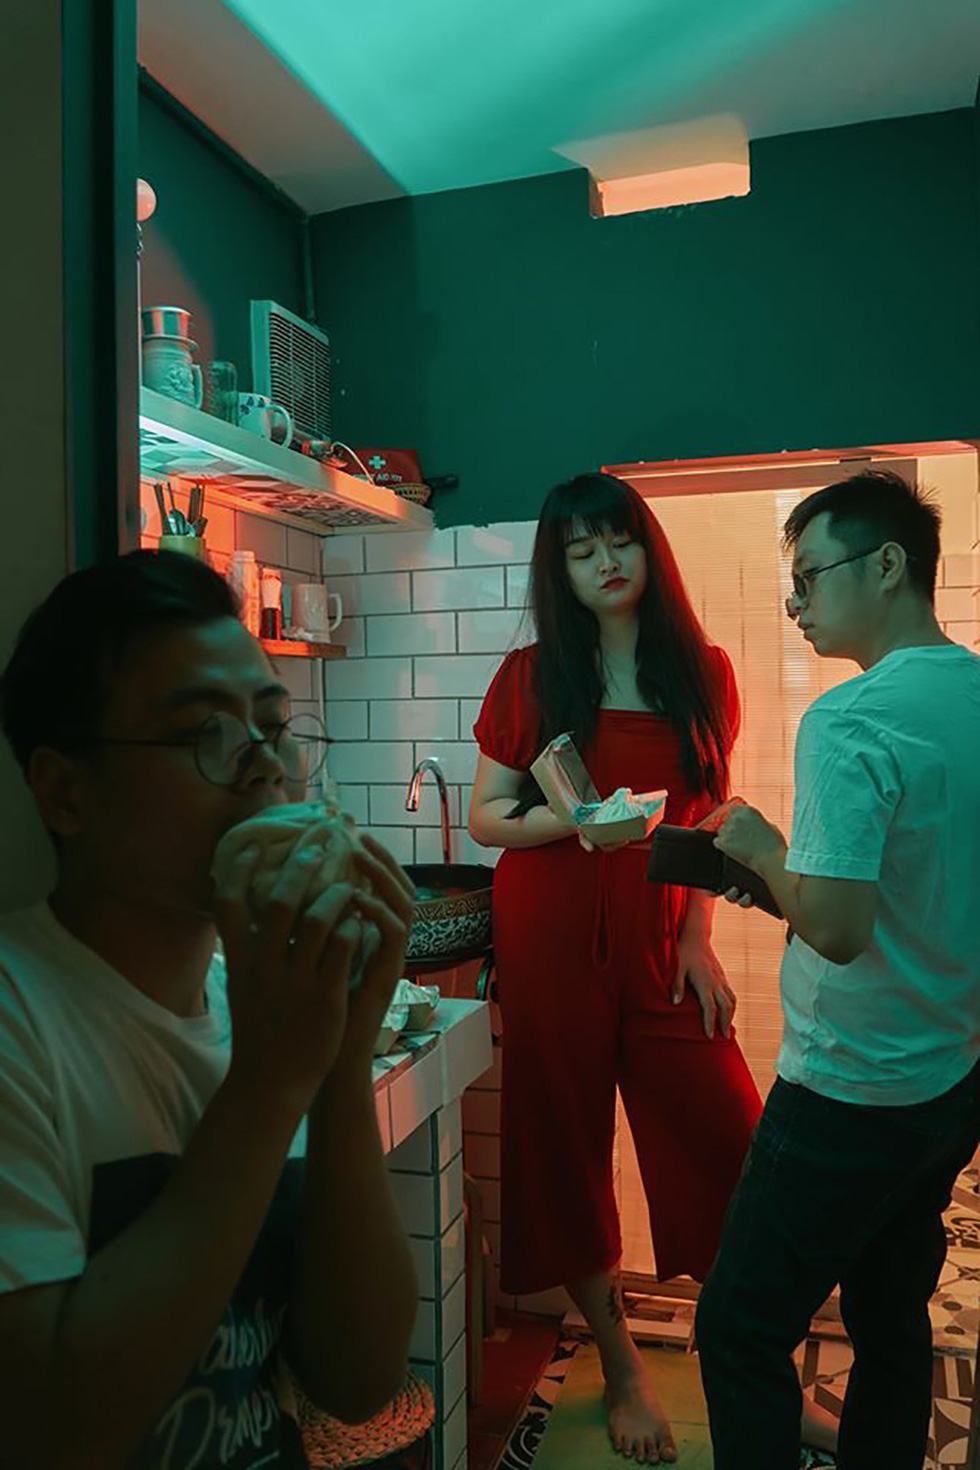 Trung Duc and Khai Quan are captured visiting Hong Kong in their imaginary 'Lost at Home' photo collection in which they staged their house into world scenes.